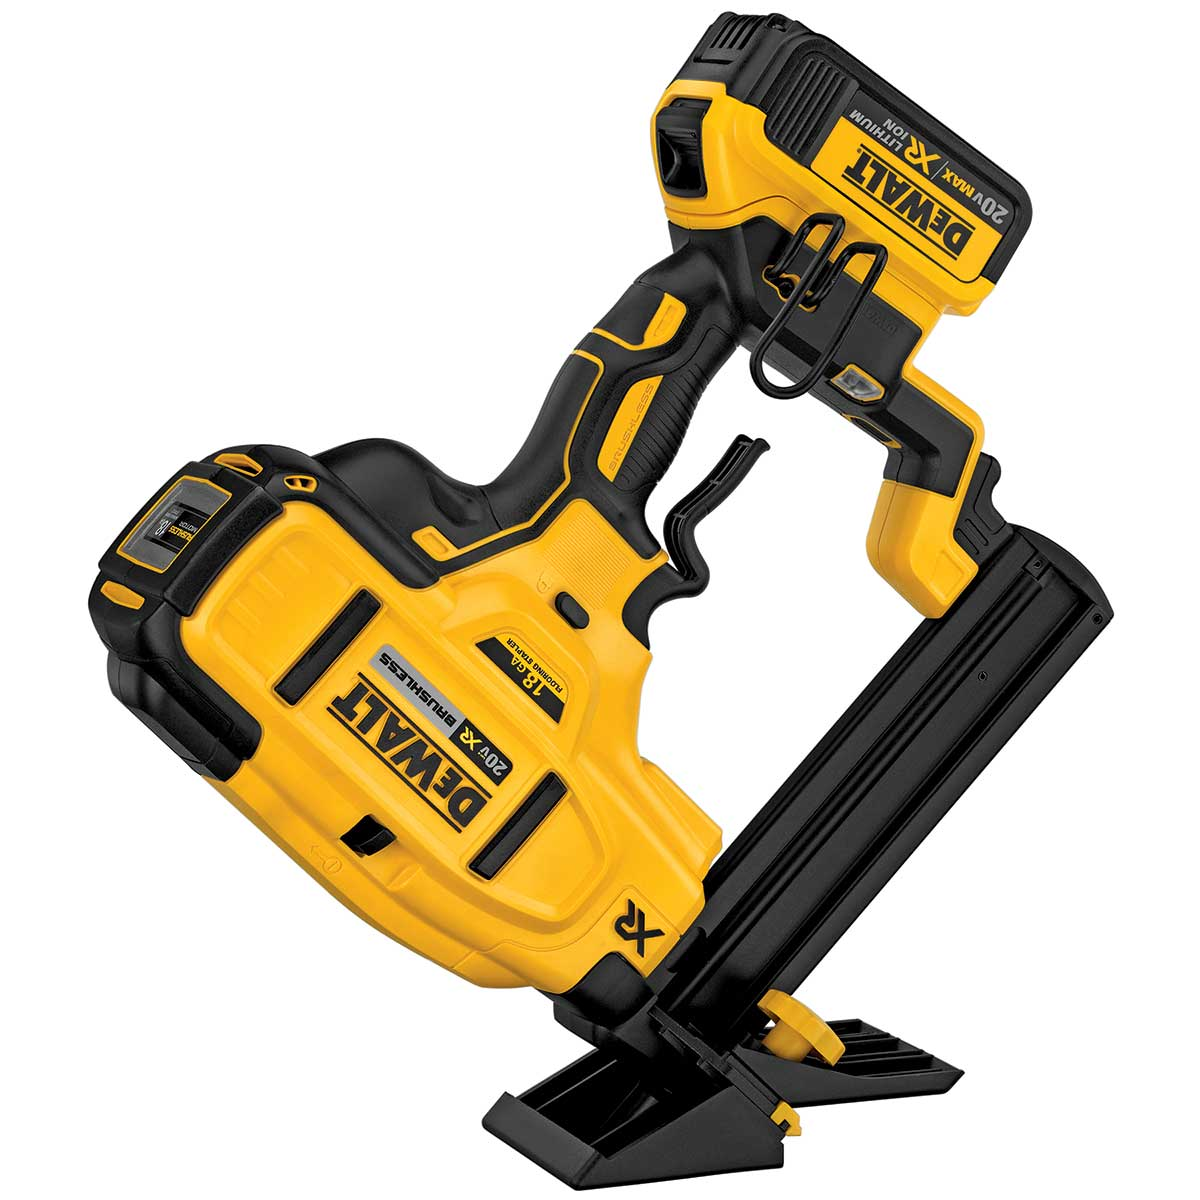 DeWalt 20V MAX* XR 18 Gauge Flooring Stapler Kit